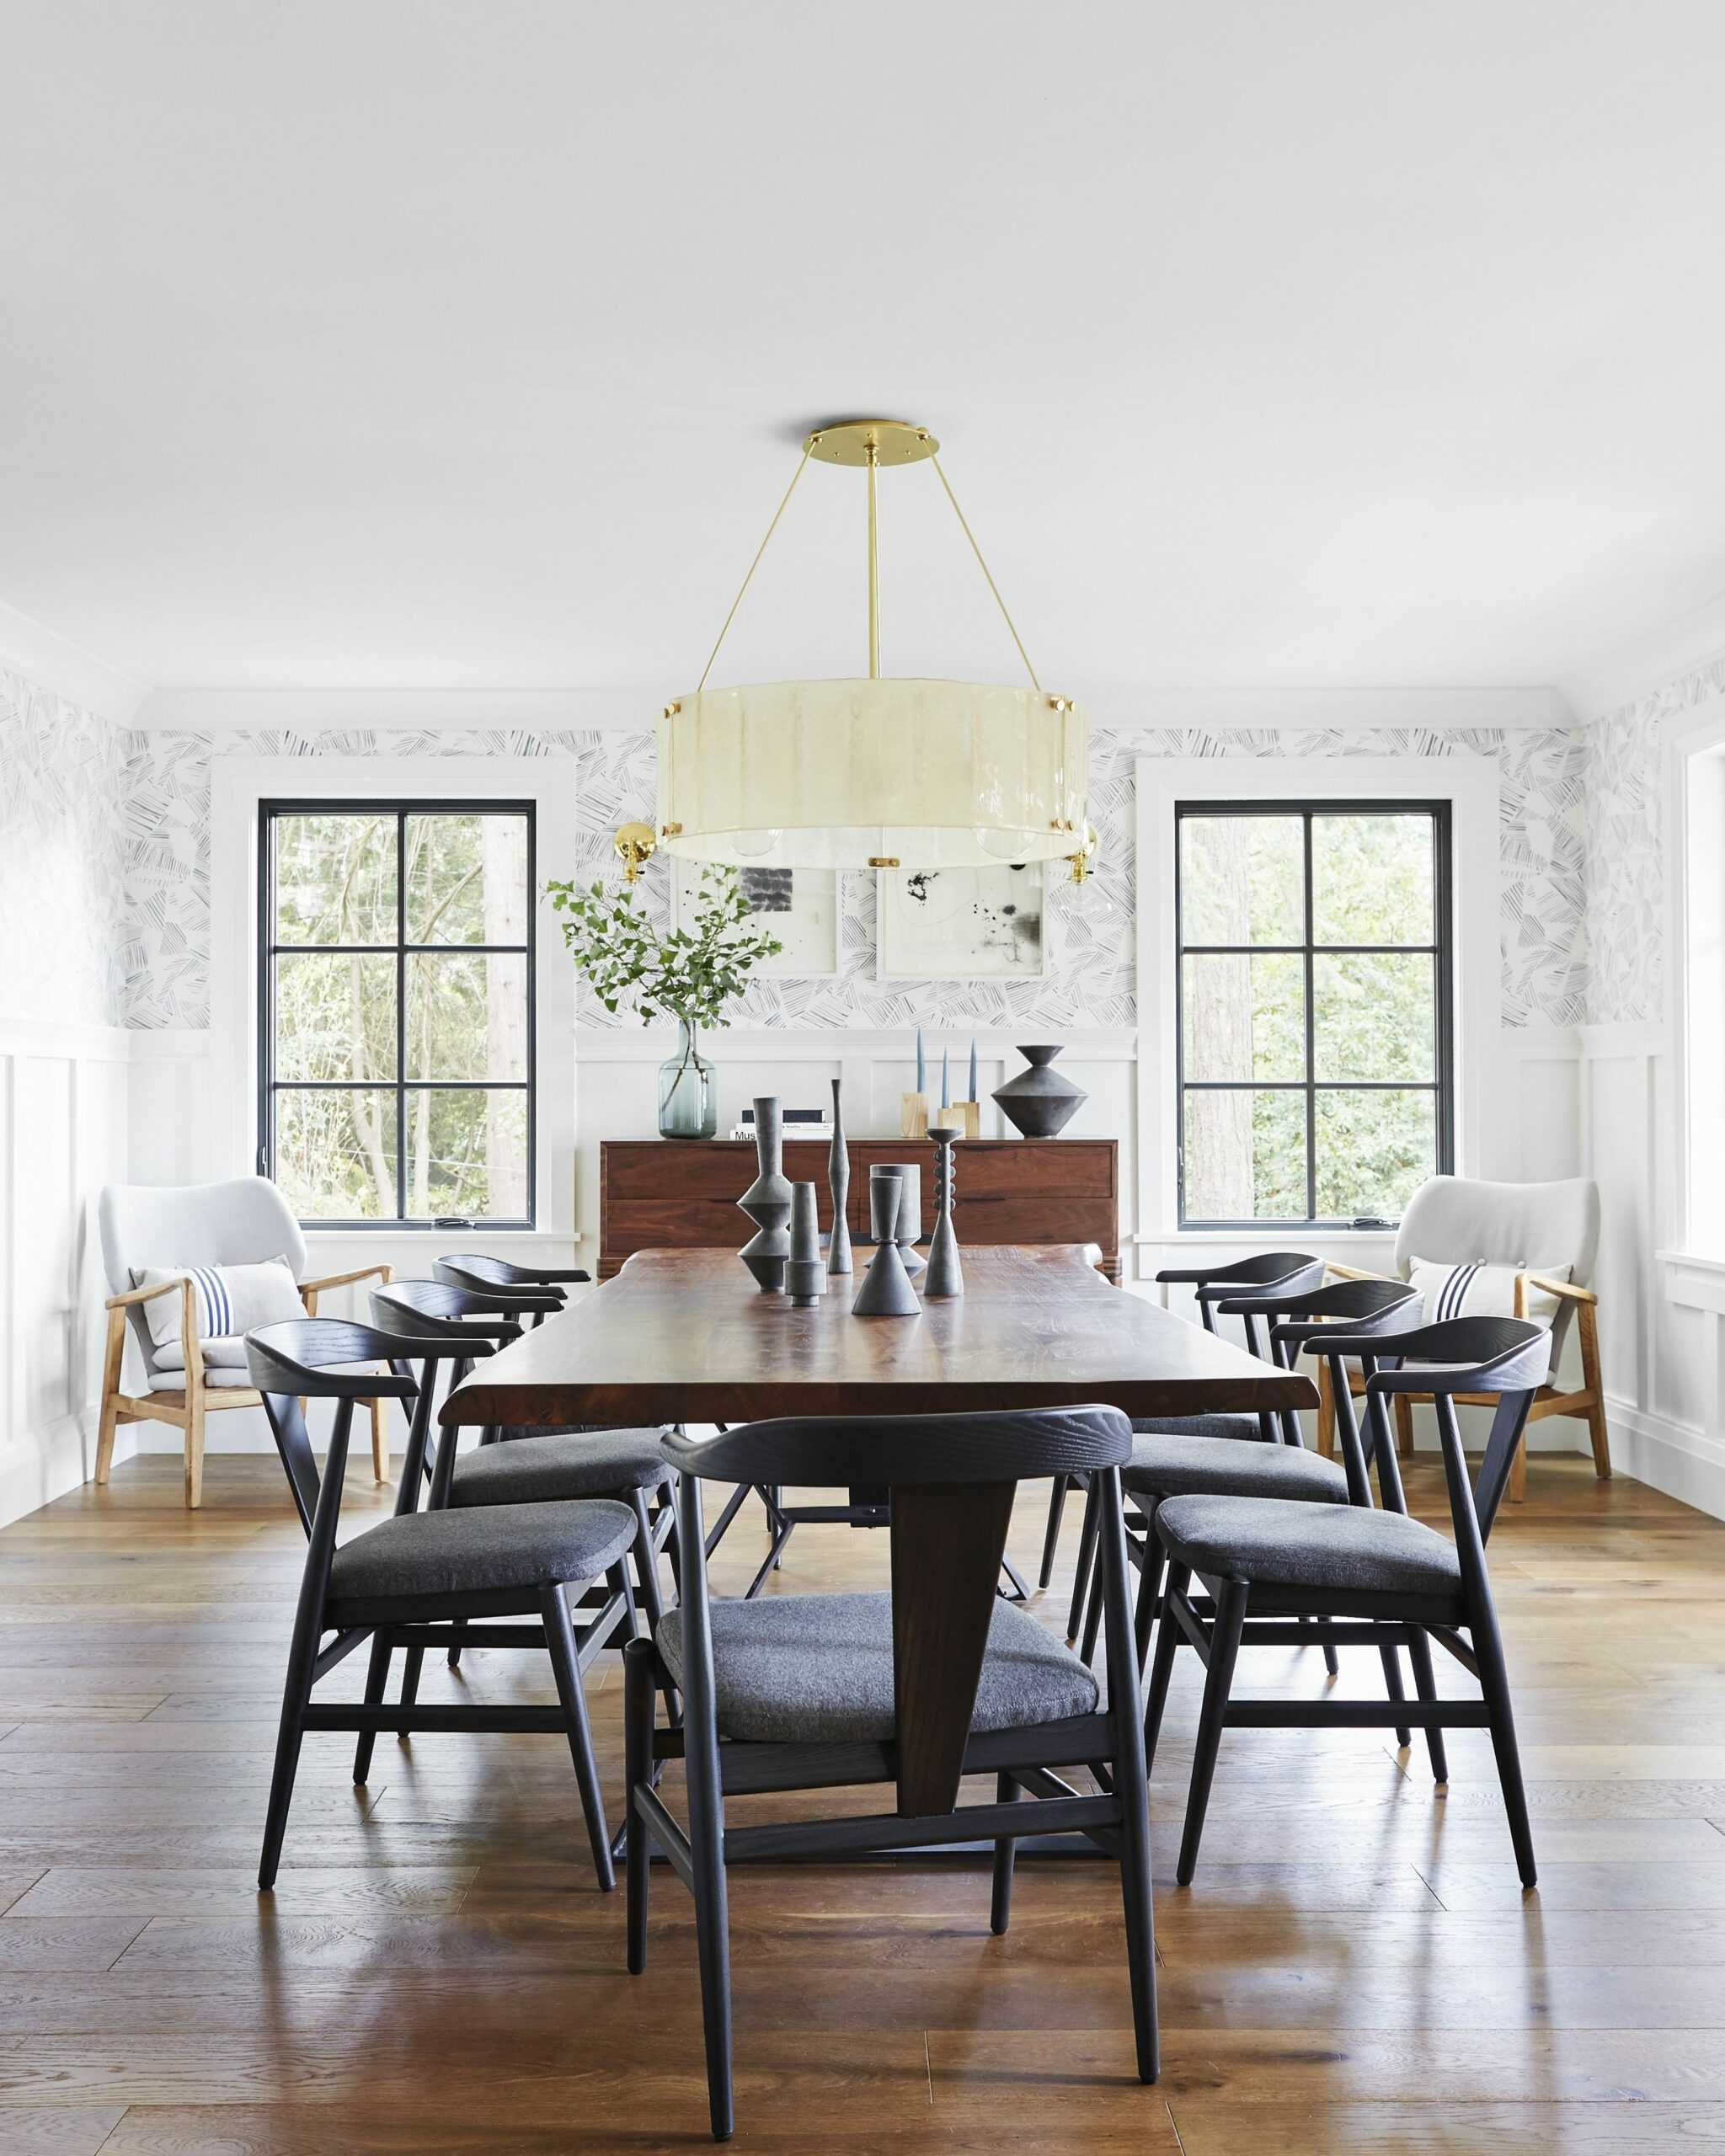 9 Dining Room Lighting Ideas to Brighten Up Your Space - dining room lamp ideas